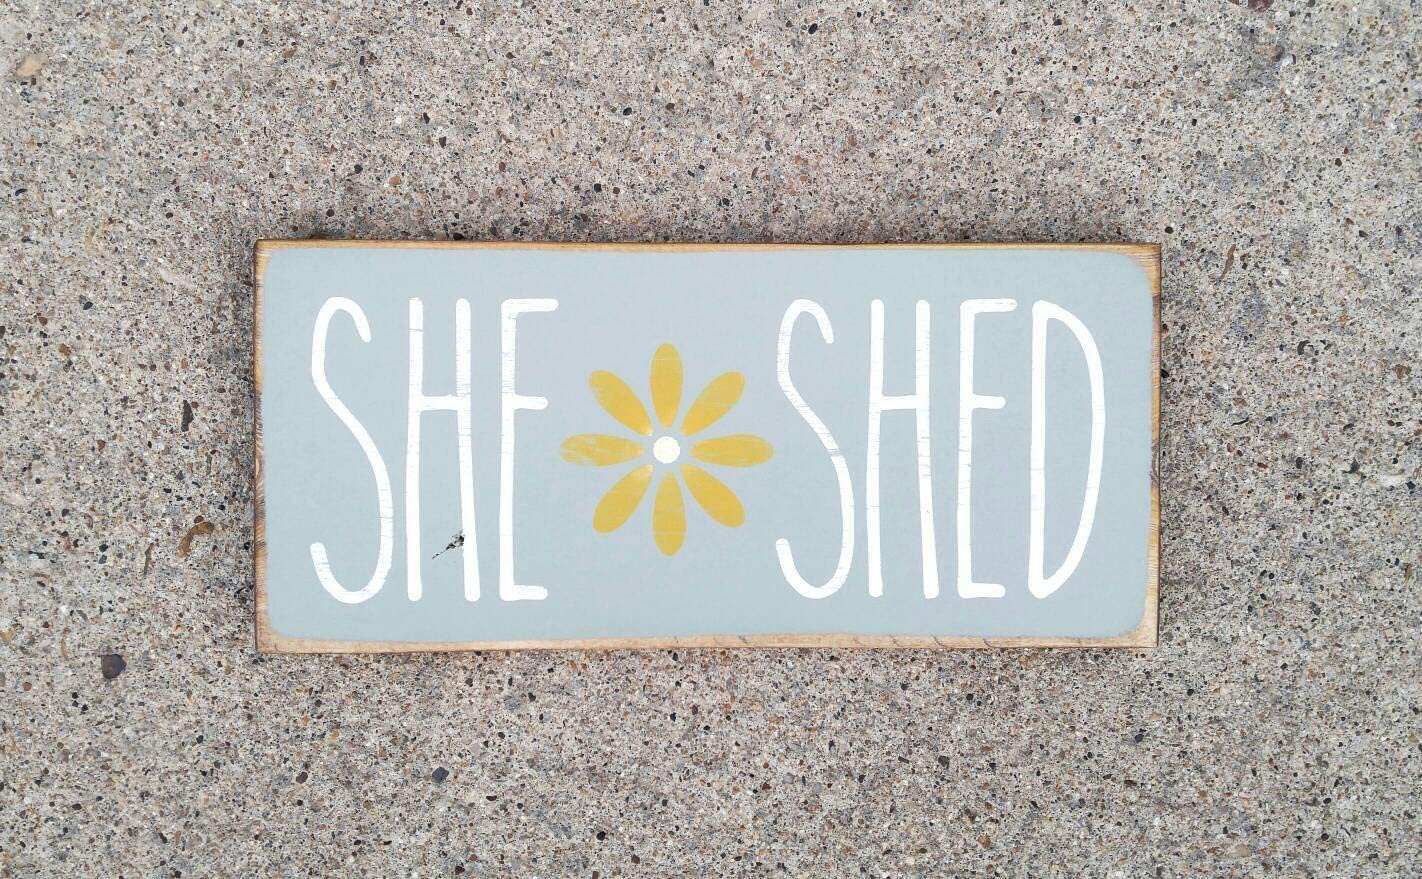 Ced454sy She Shed Sign Flower Garden Shed Signs Rustic Wood Yard